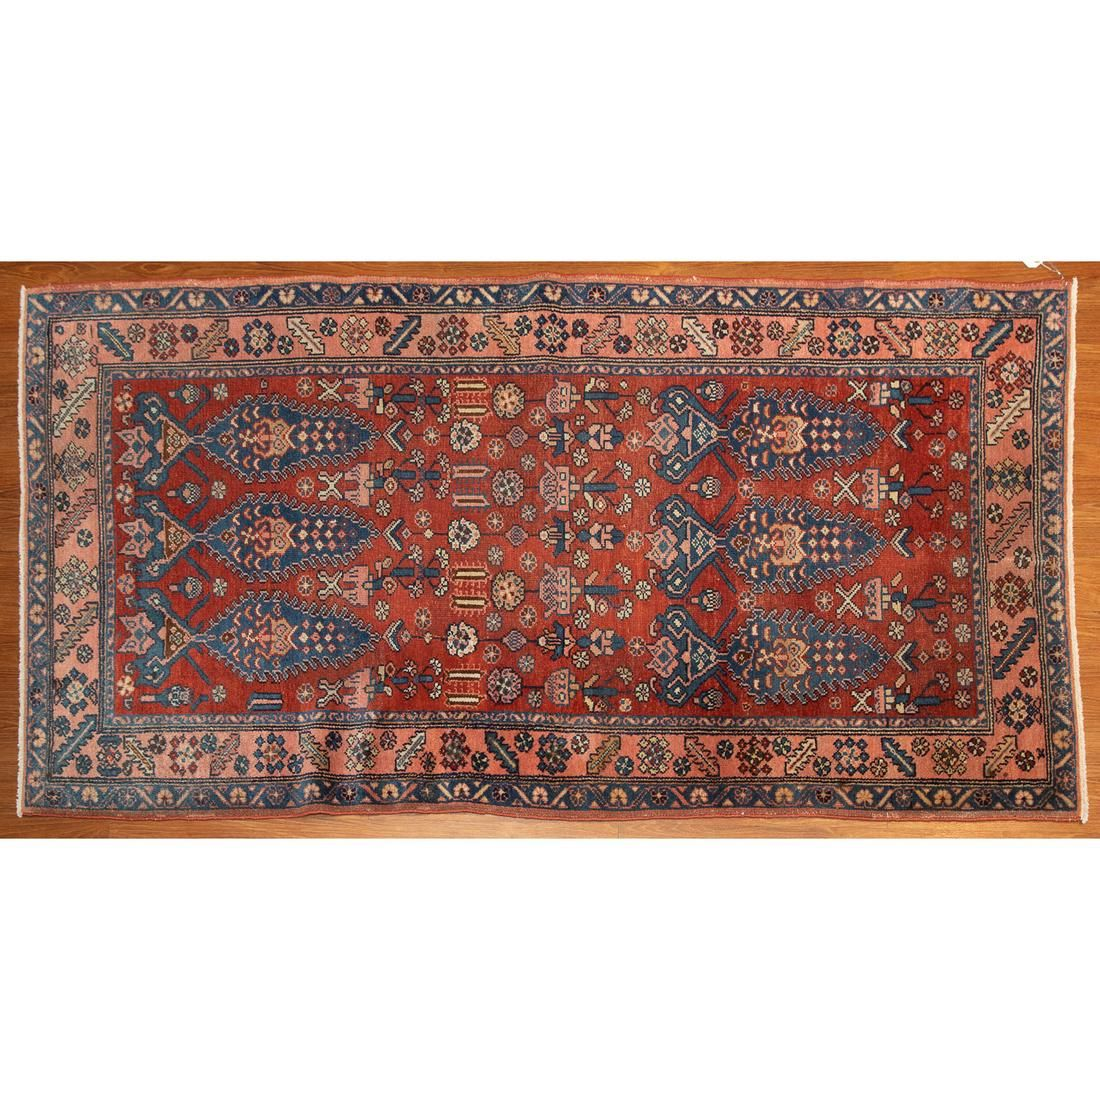 Semi-Antique Malayer Rug, Persia, 3.5 x 6.2